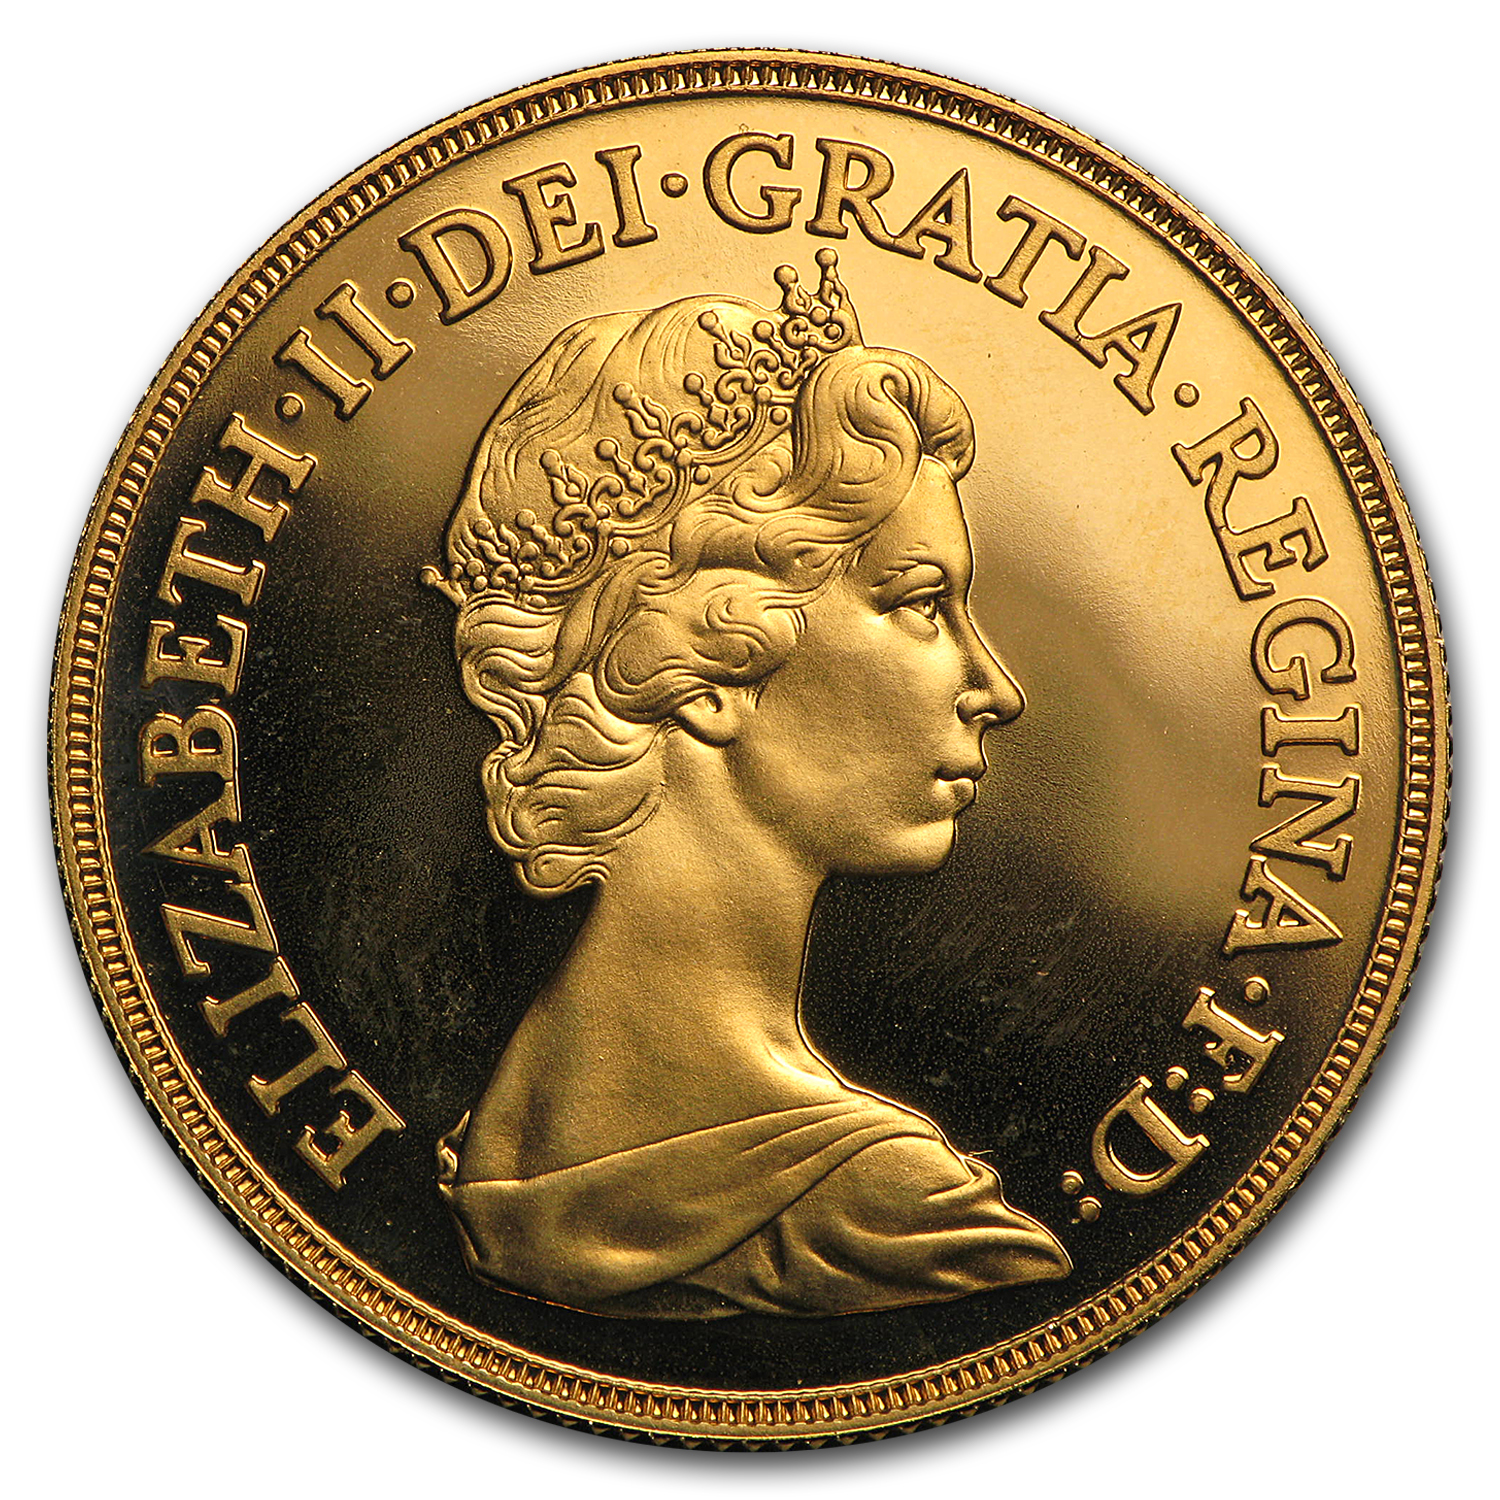 Great Britain Proof Gold £2 Elizabeth II (AGW .4708)